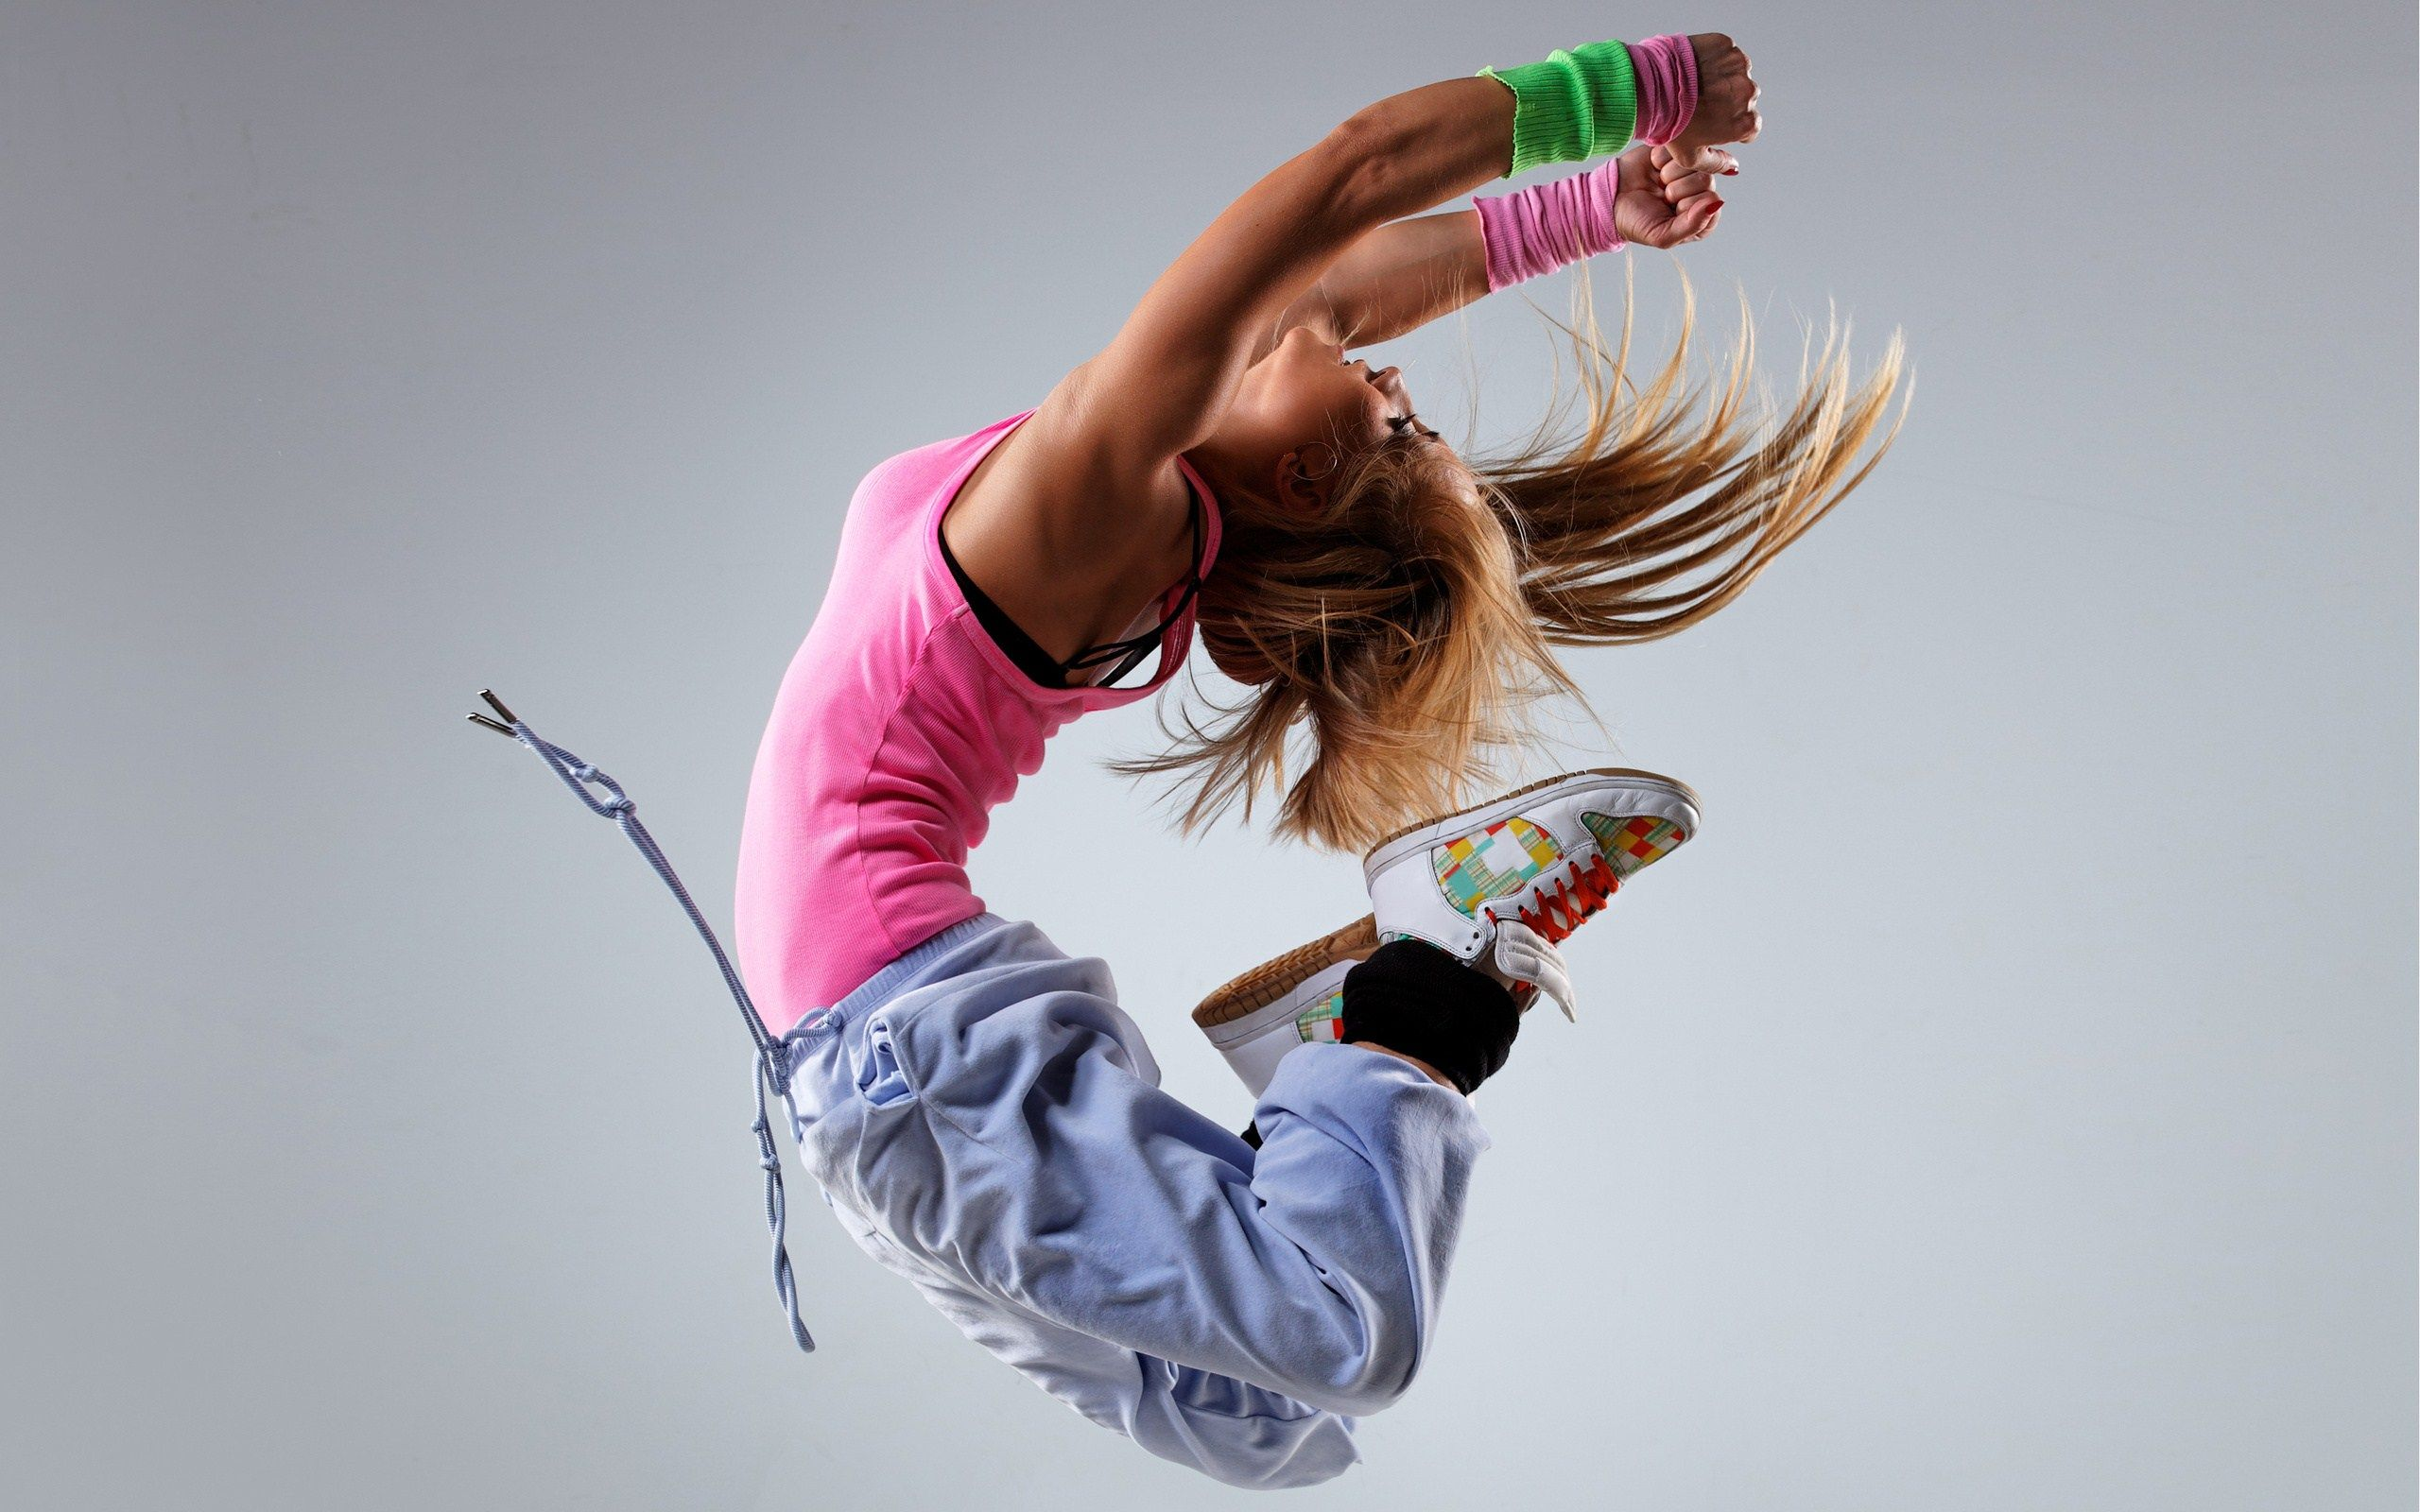 photos of women dancing to happy music Ask Image Search